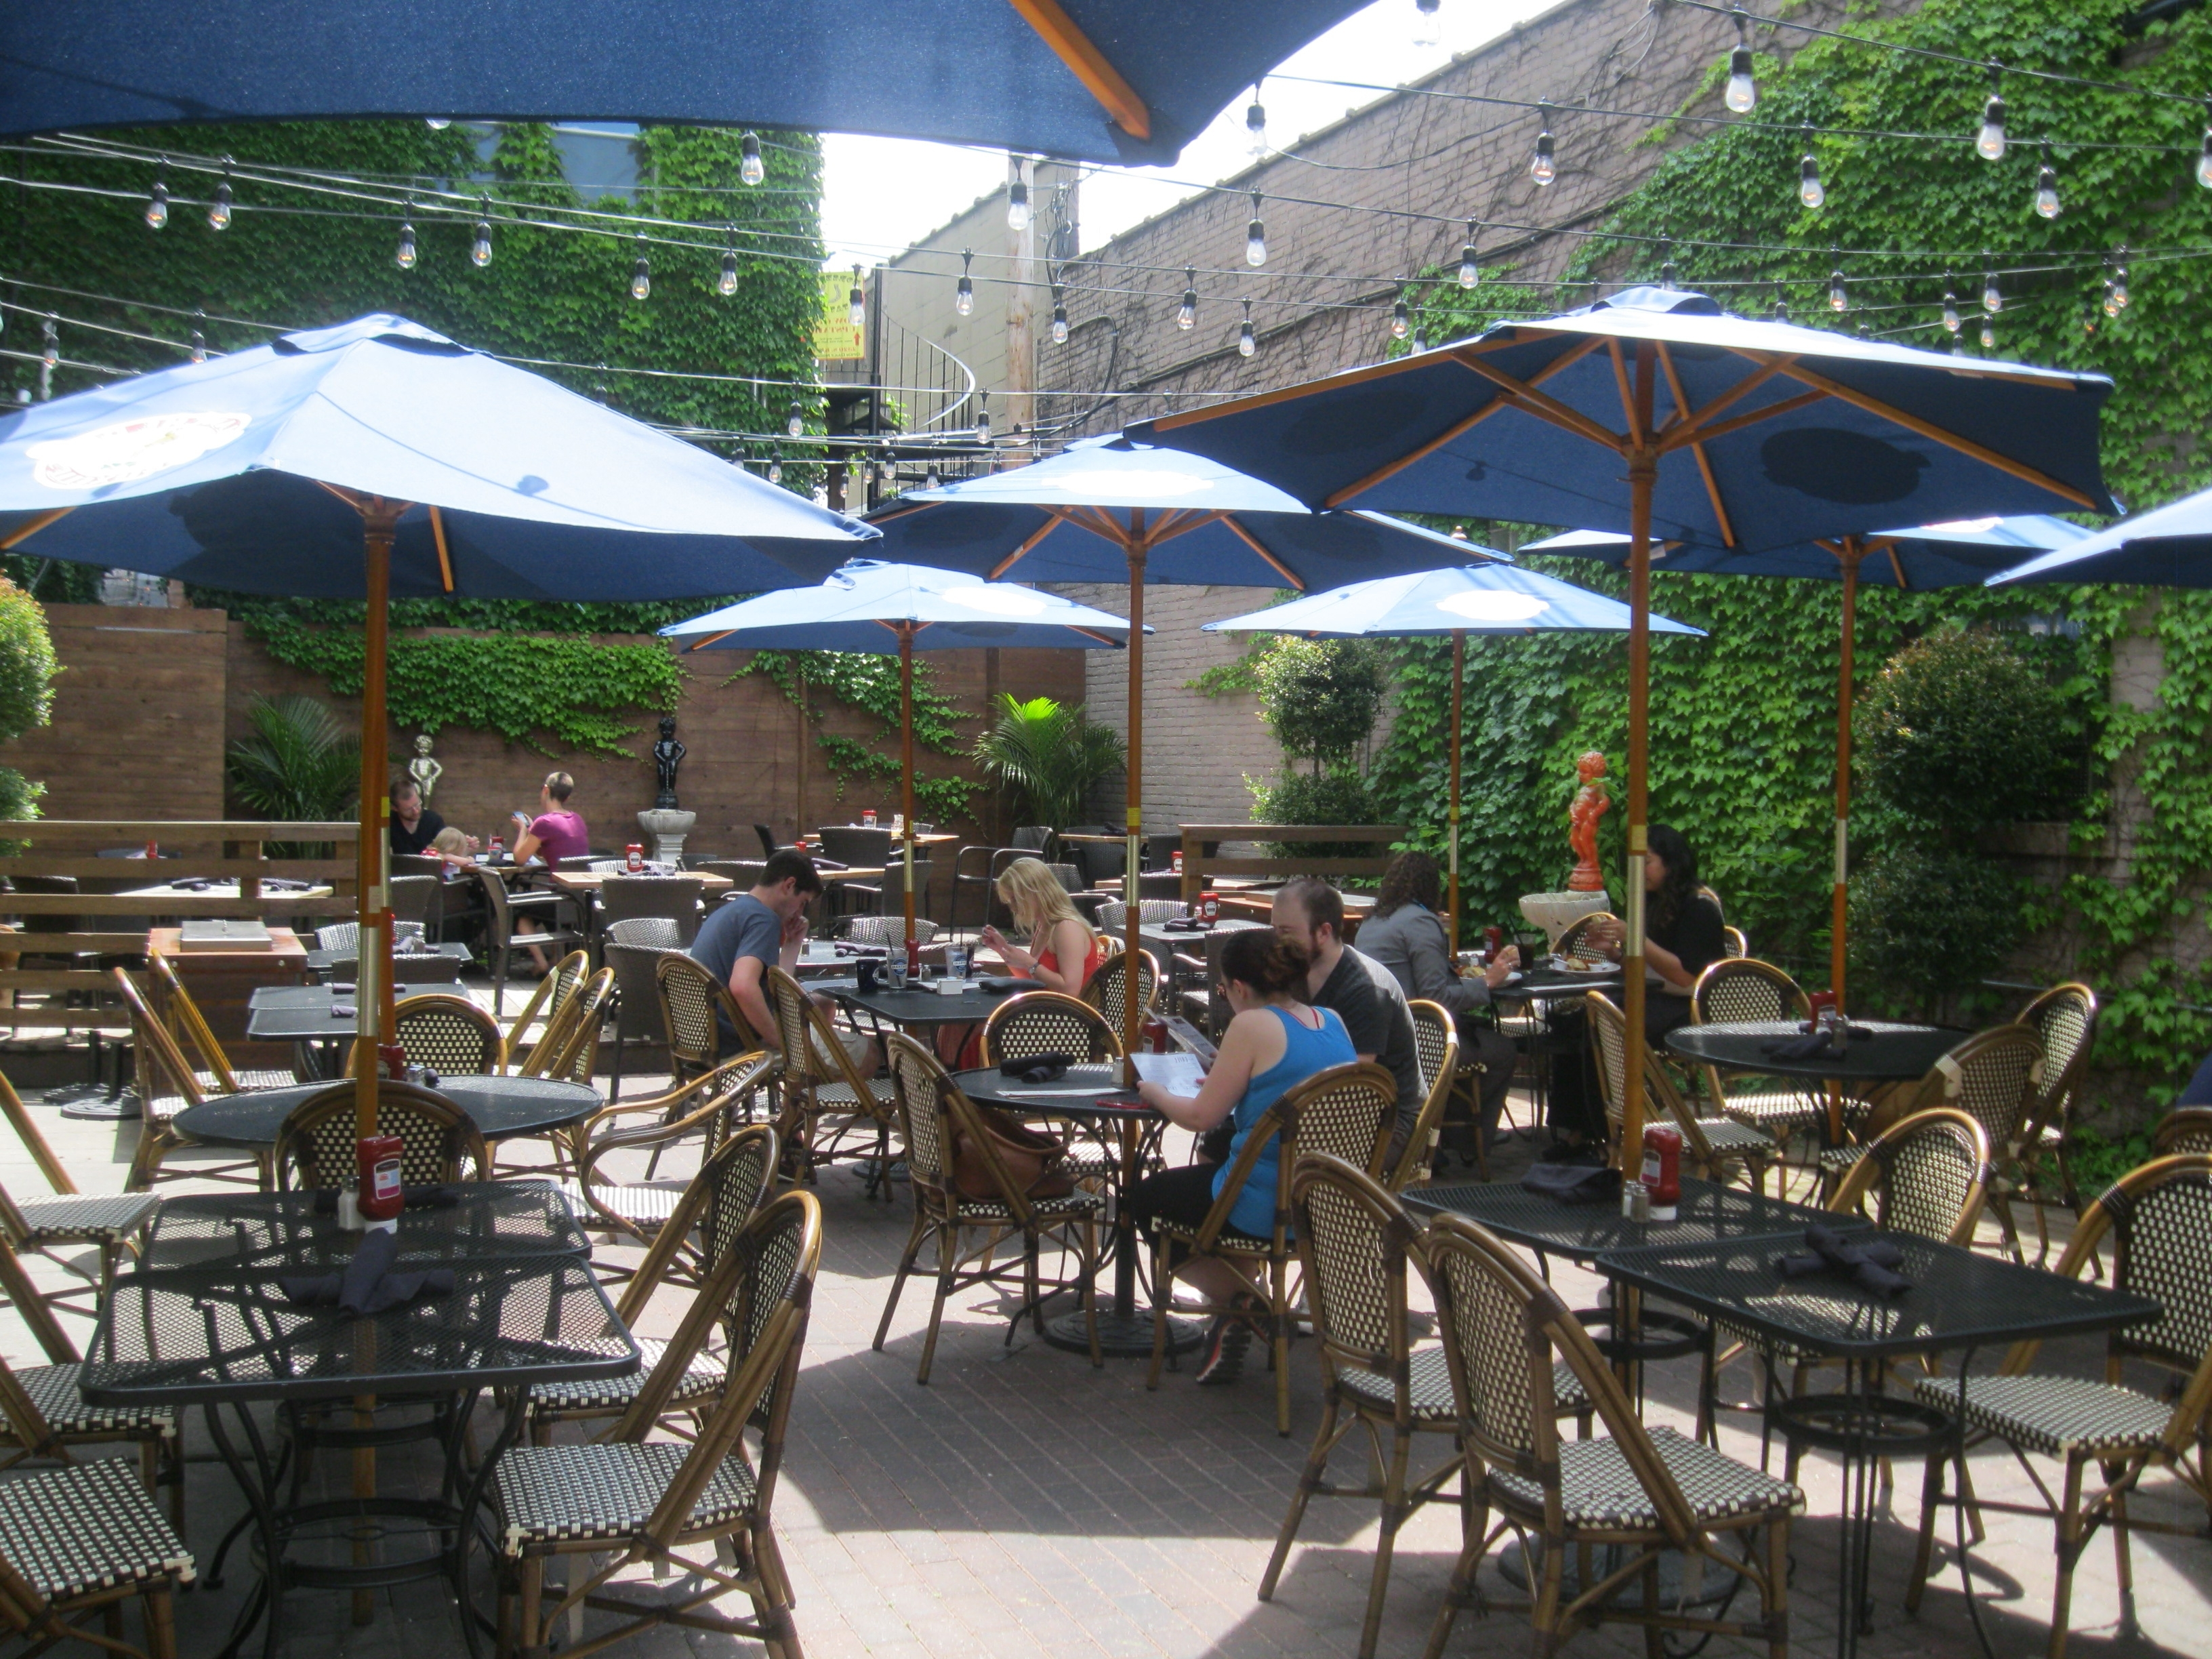 2018 Dining: 50 Great Places For Patio Dining » Urban Milwaukee With Regard To Patio Dining Umbrellas (Gallery 19 of 20)